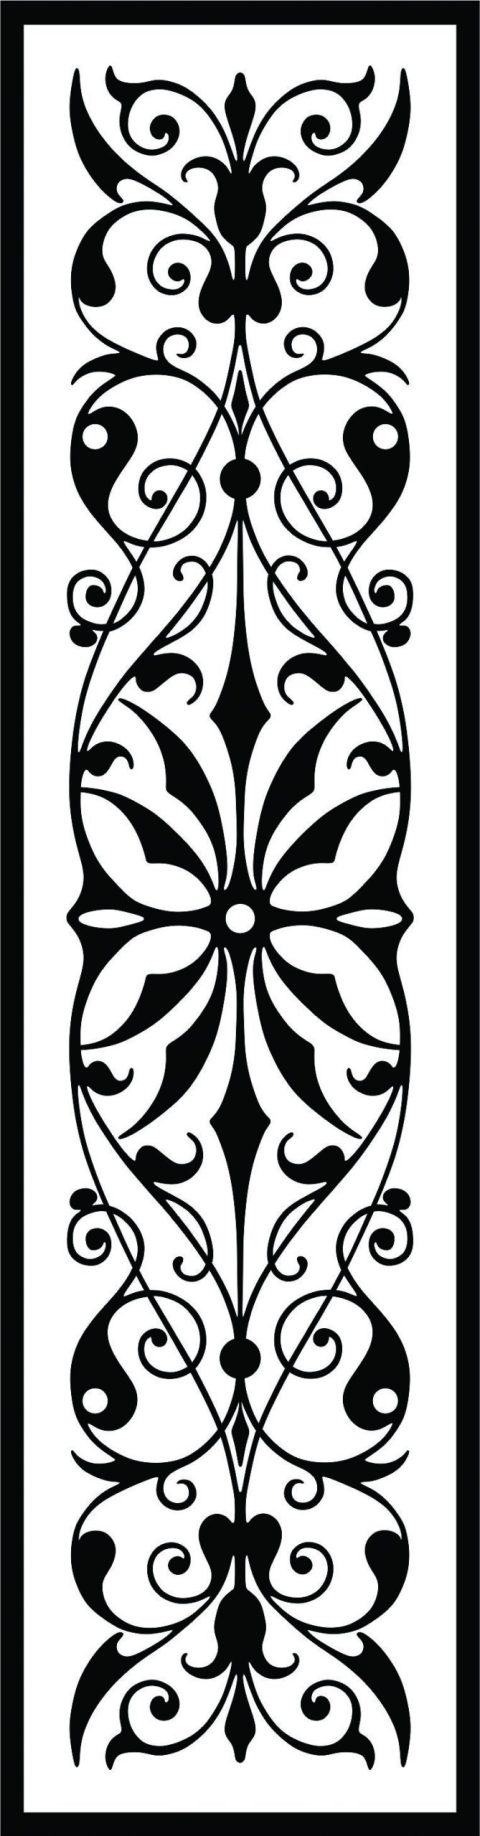 Decorative Screen Patterns For Laser Cutting 36 Free DXF File